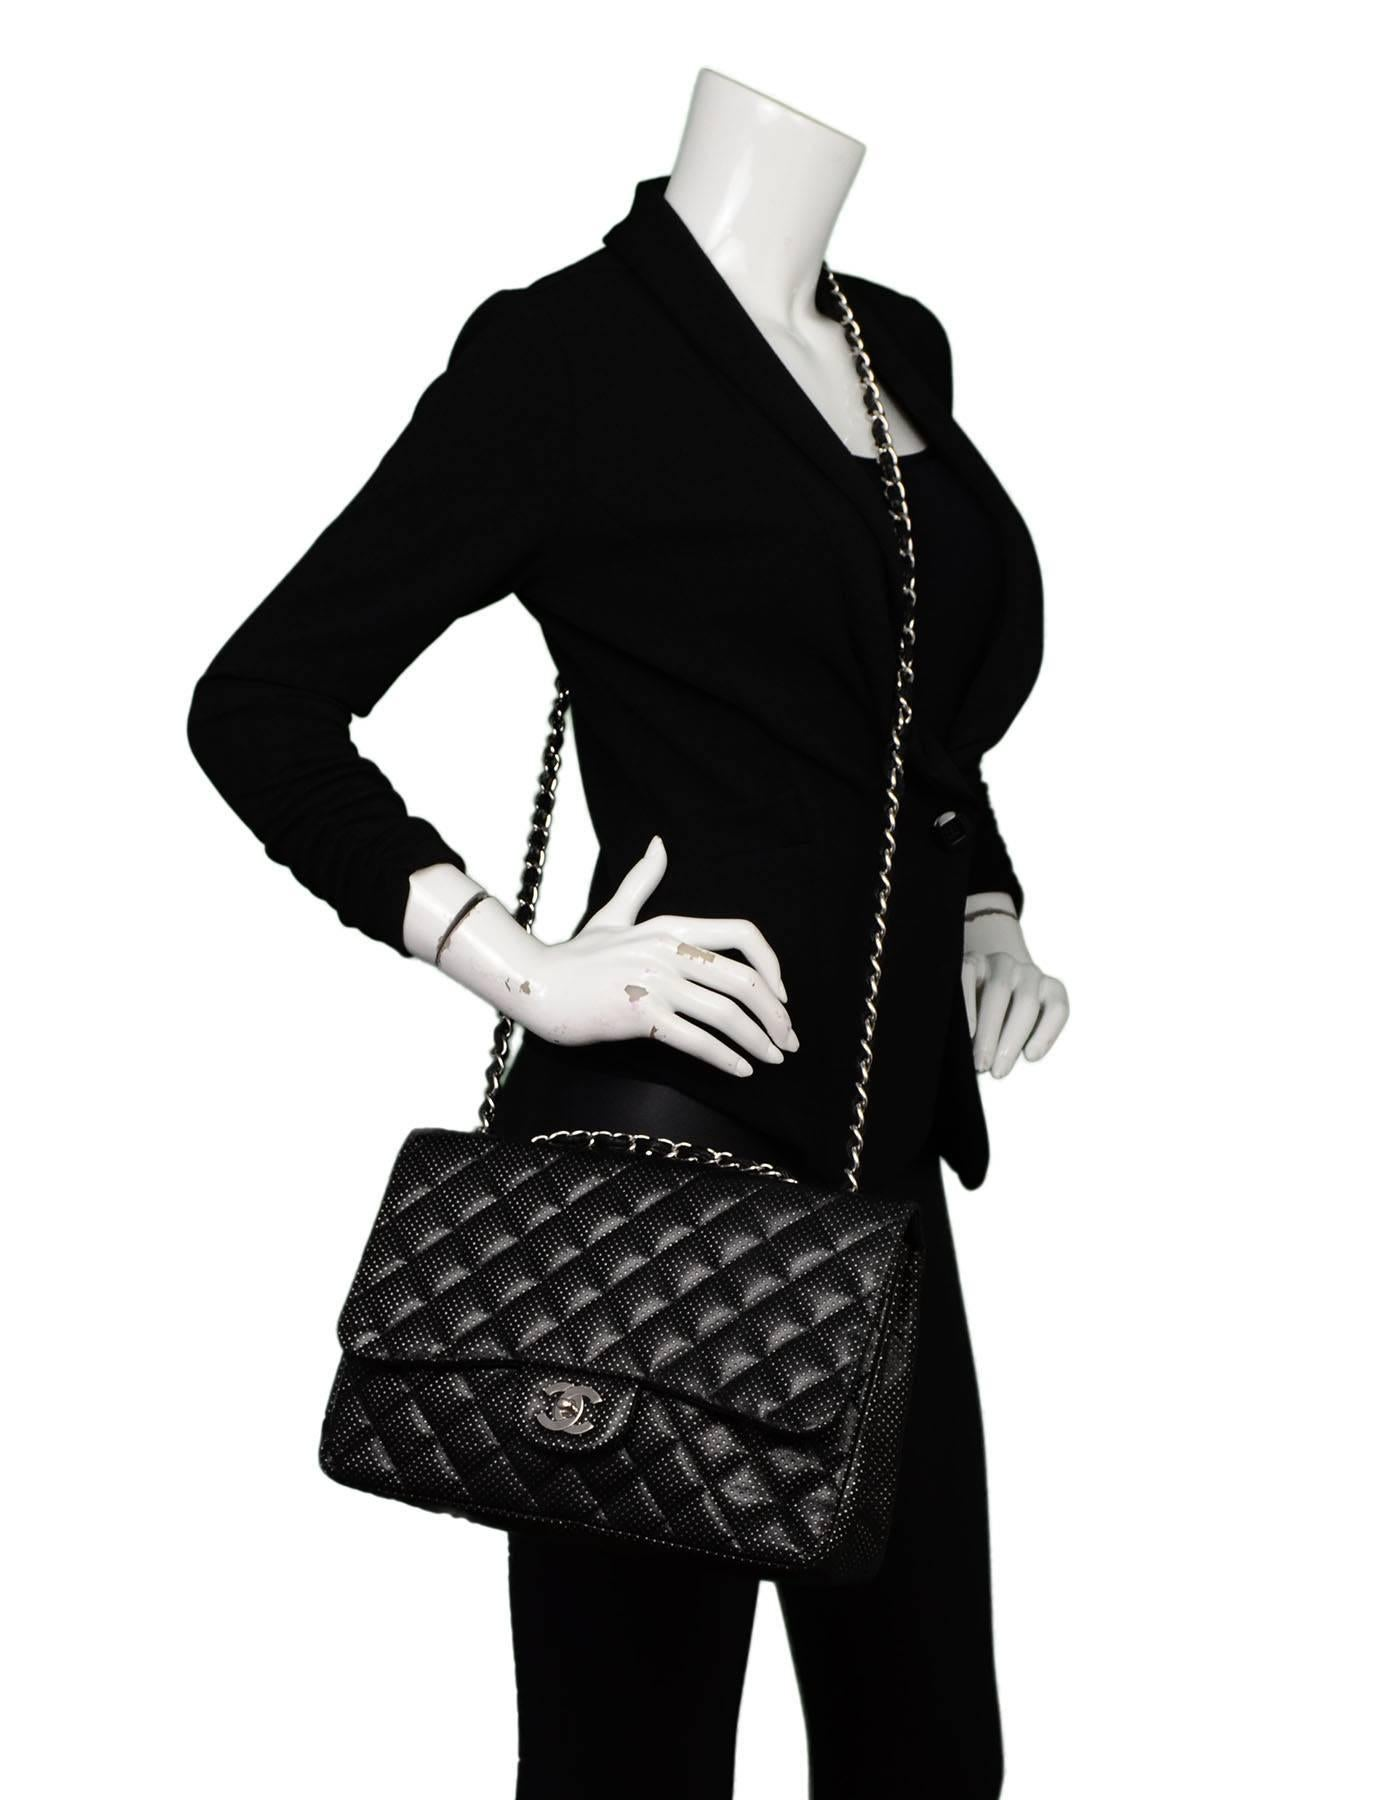 e38549d18a6b Chanel Black Perforated Jumbo Quilted Classic Flap Bag SHW For Sale at  1stdibs